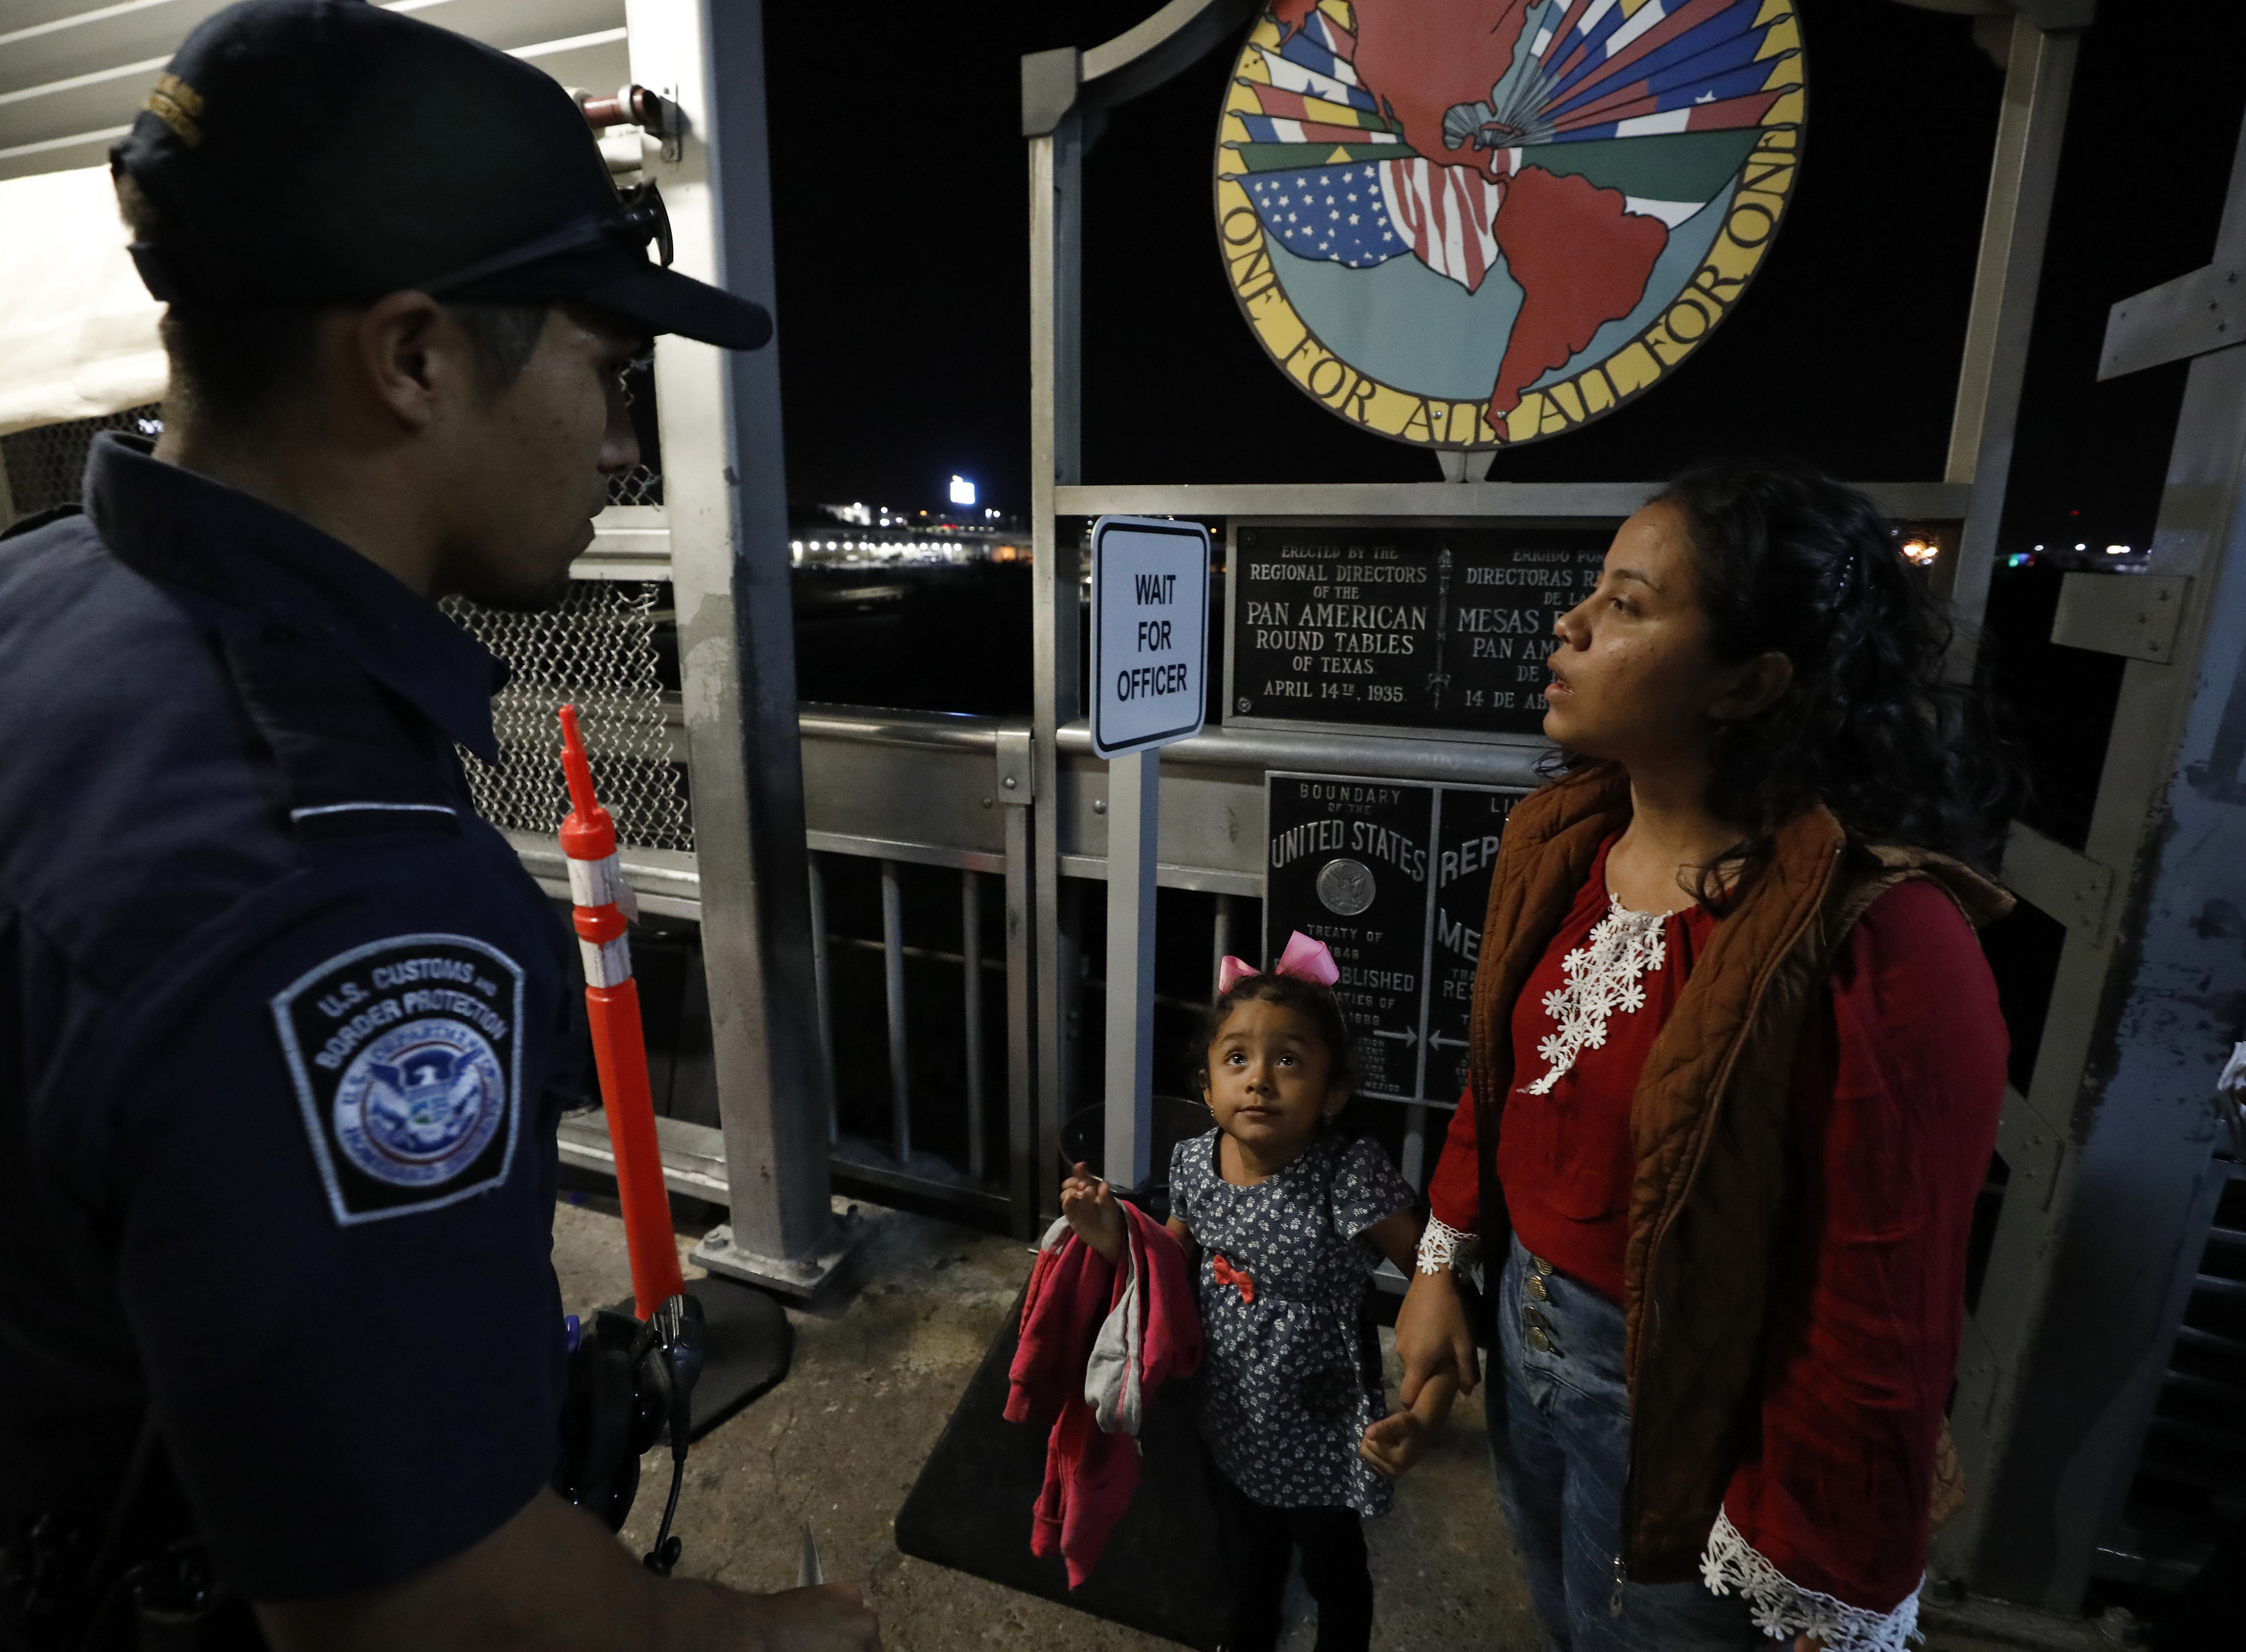 A U.S. Customs and Border Protection officer, left, talks with Honduran migrants Natalie Amador, 4, and her mother Alejandra Amador, 24, as they wait to cross International Bridge No. 1 for their first hearing at the tent court facility, Monday, Sept. 16, 2019, in Laredo, Texas. The migrants were sent back to Mexico under the Migrant Protection Protocols.